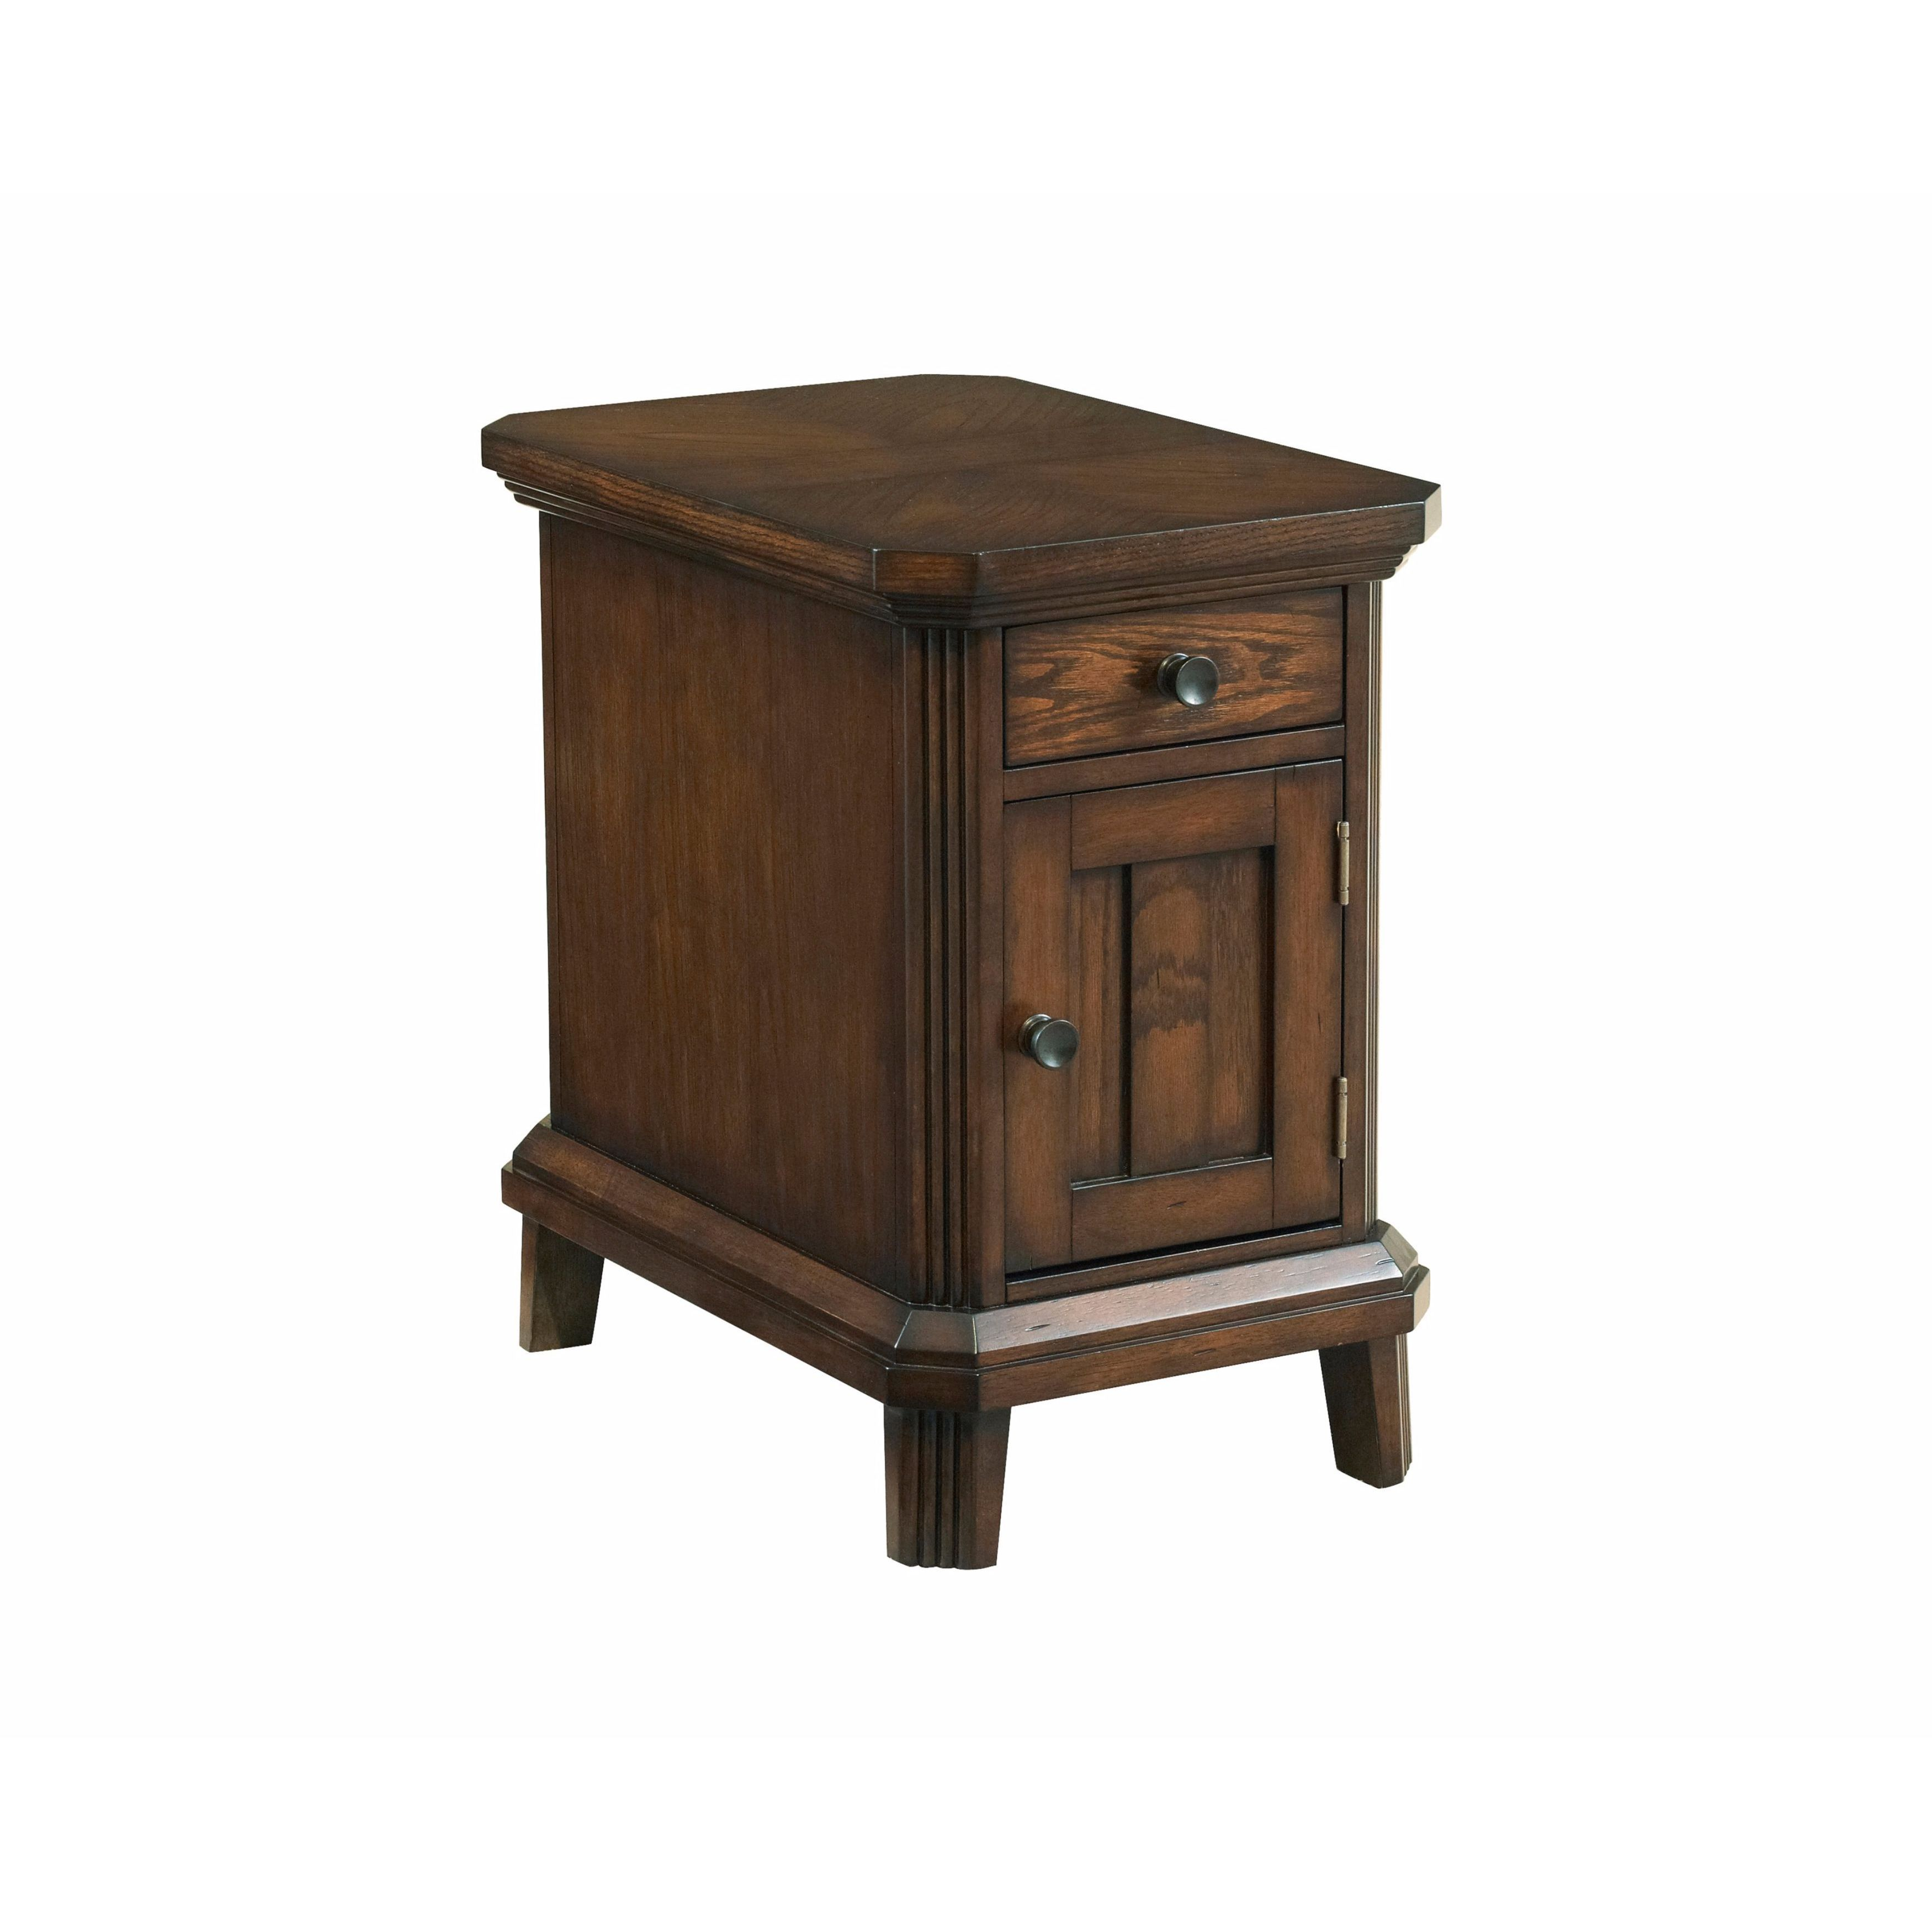 Broyhill Furniture Estes Park Chairside End Table (Brown)